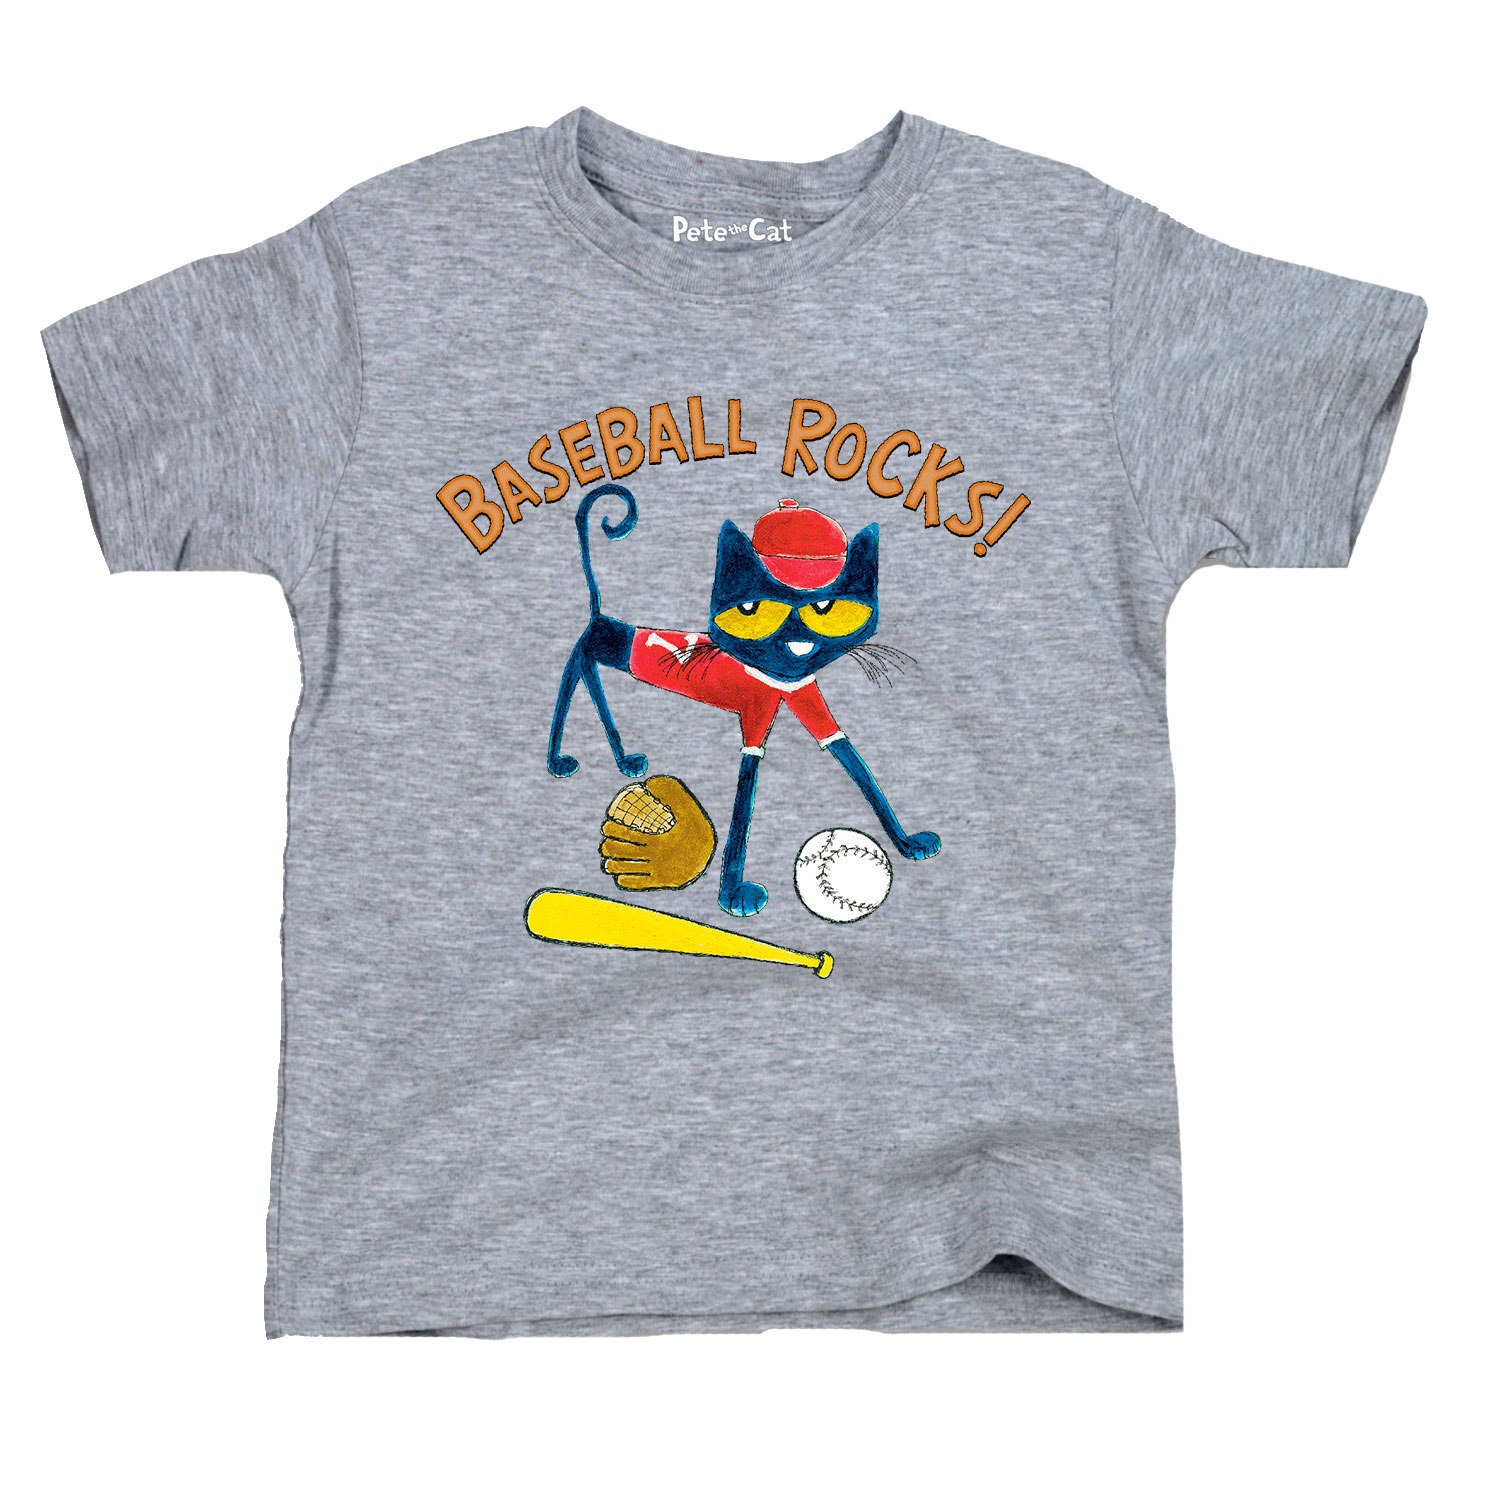 Pete The Cat Baseball Rocks! - Toddler Short Sleeve Tee